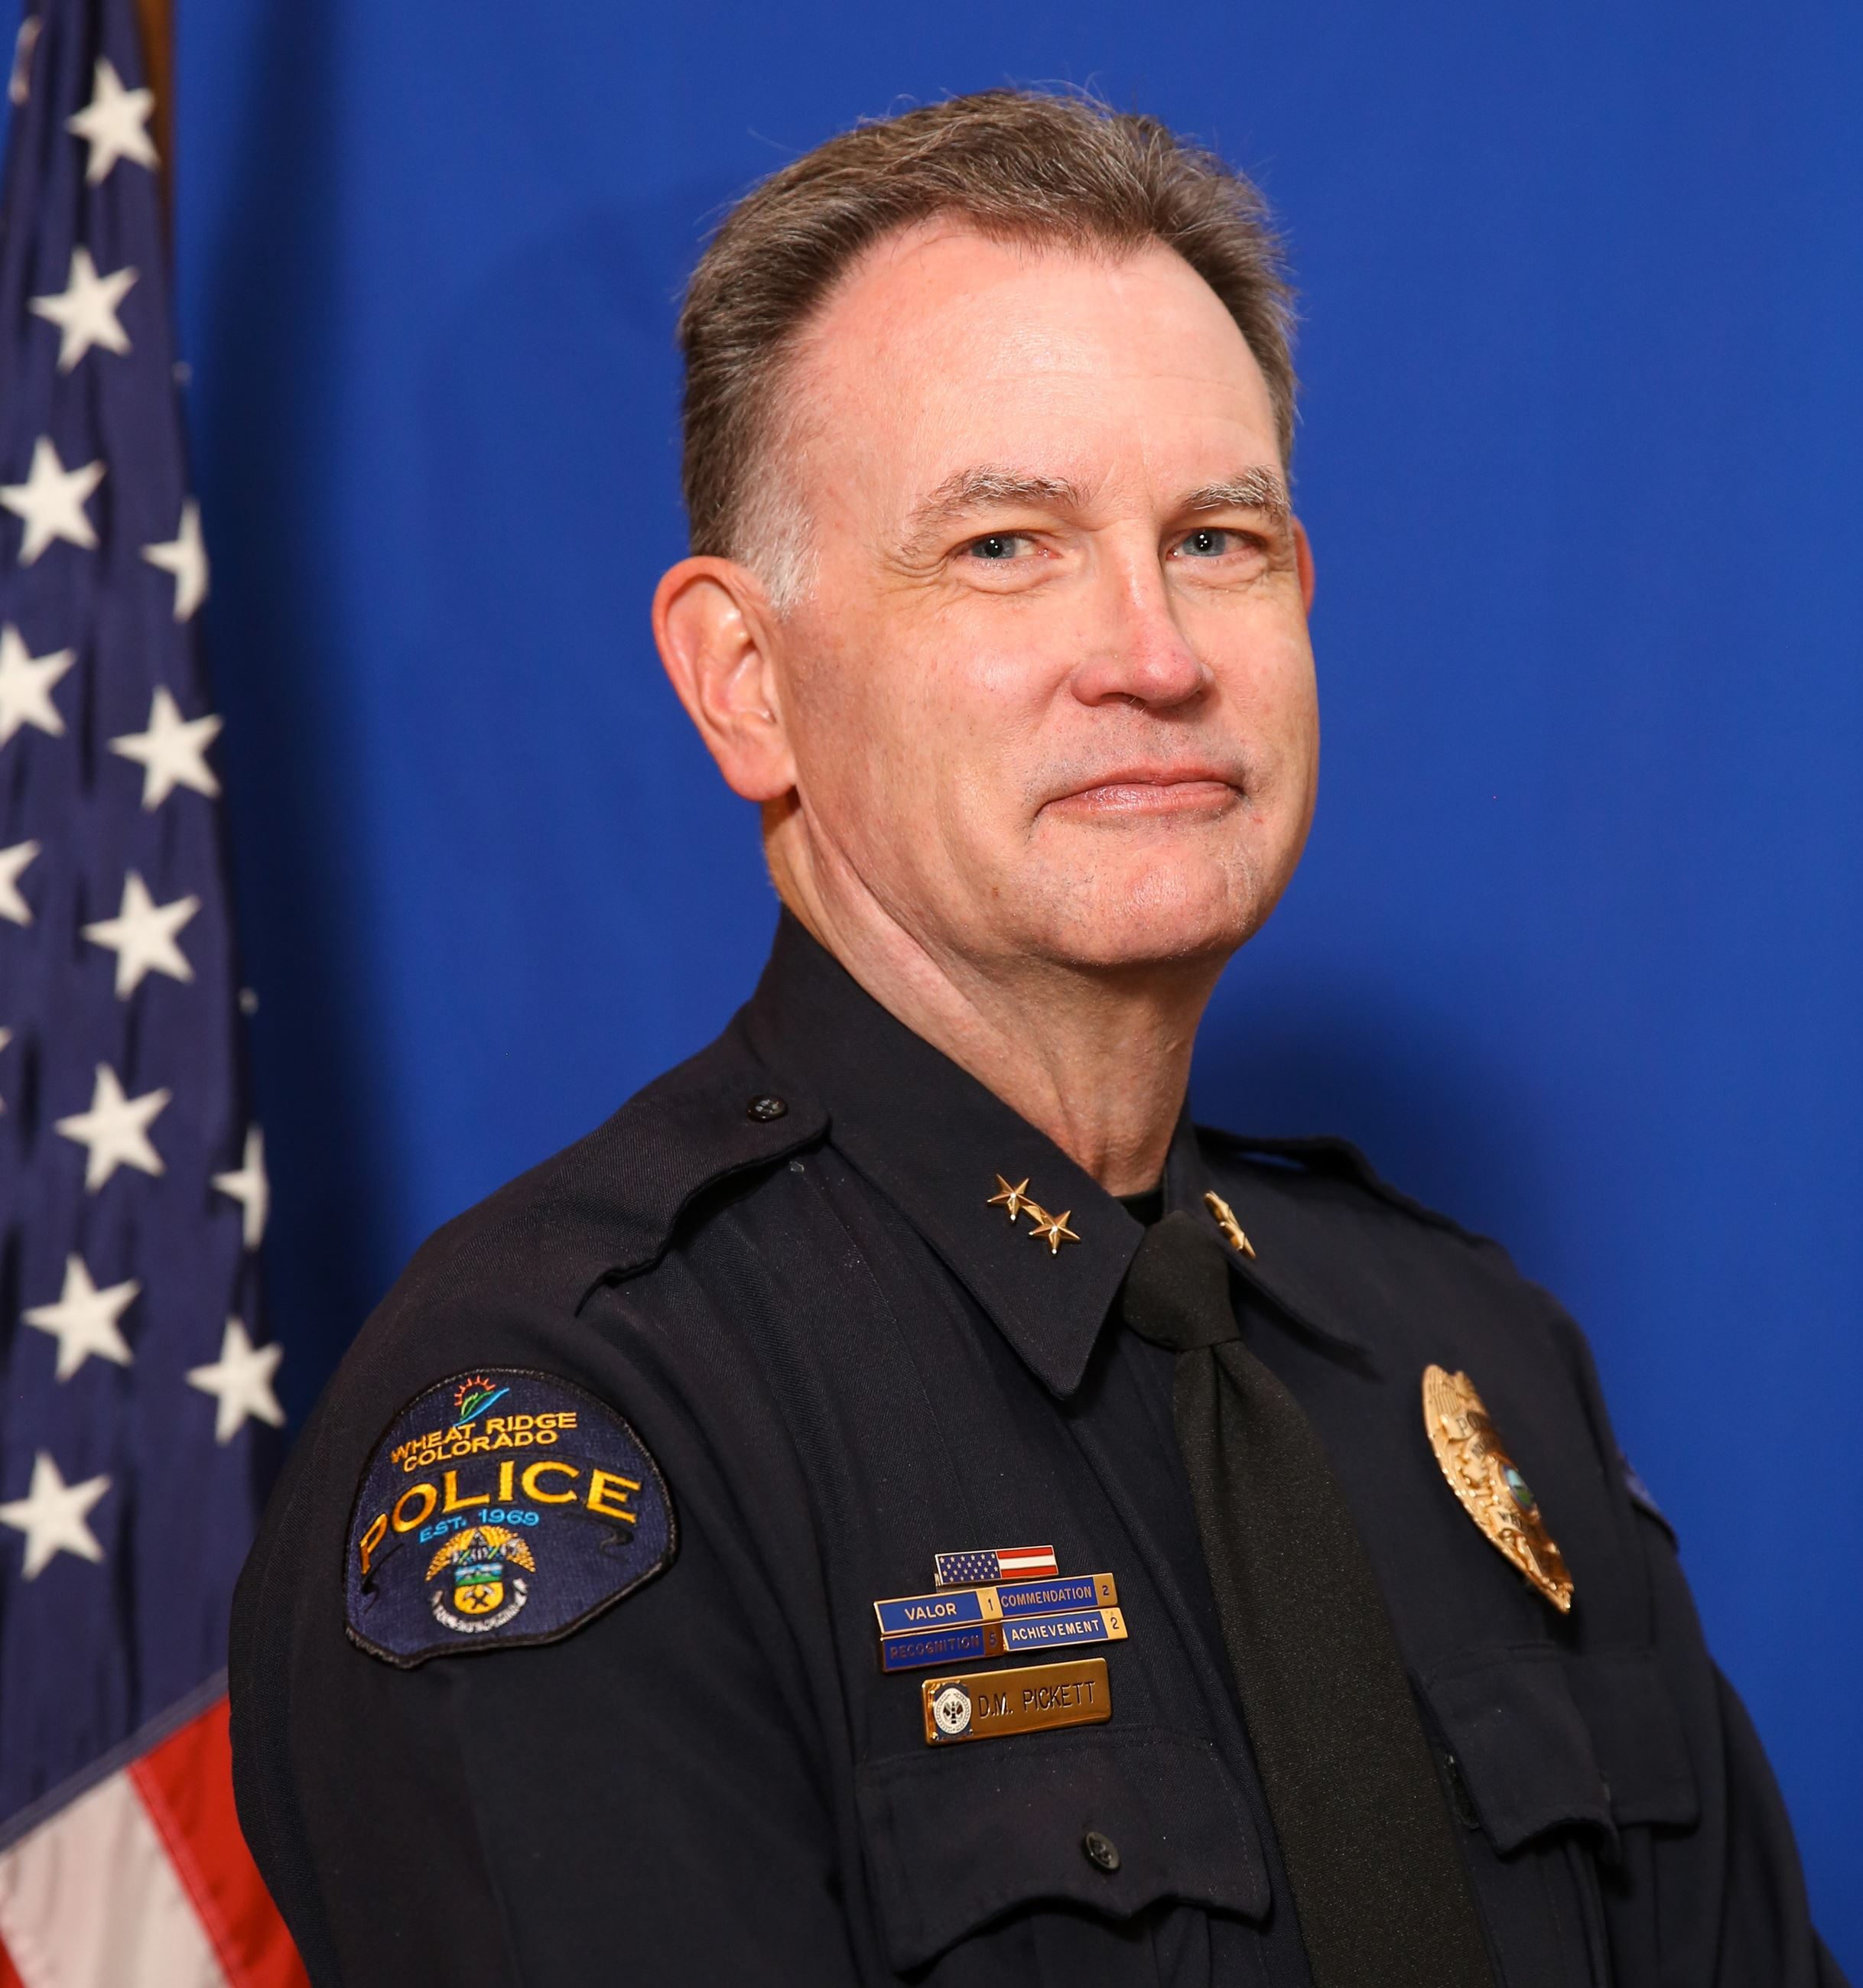 Phot of Chief Pickett for Contact Us